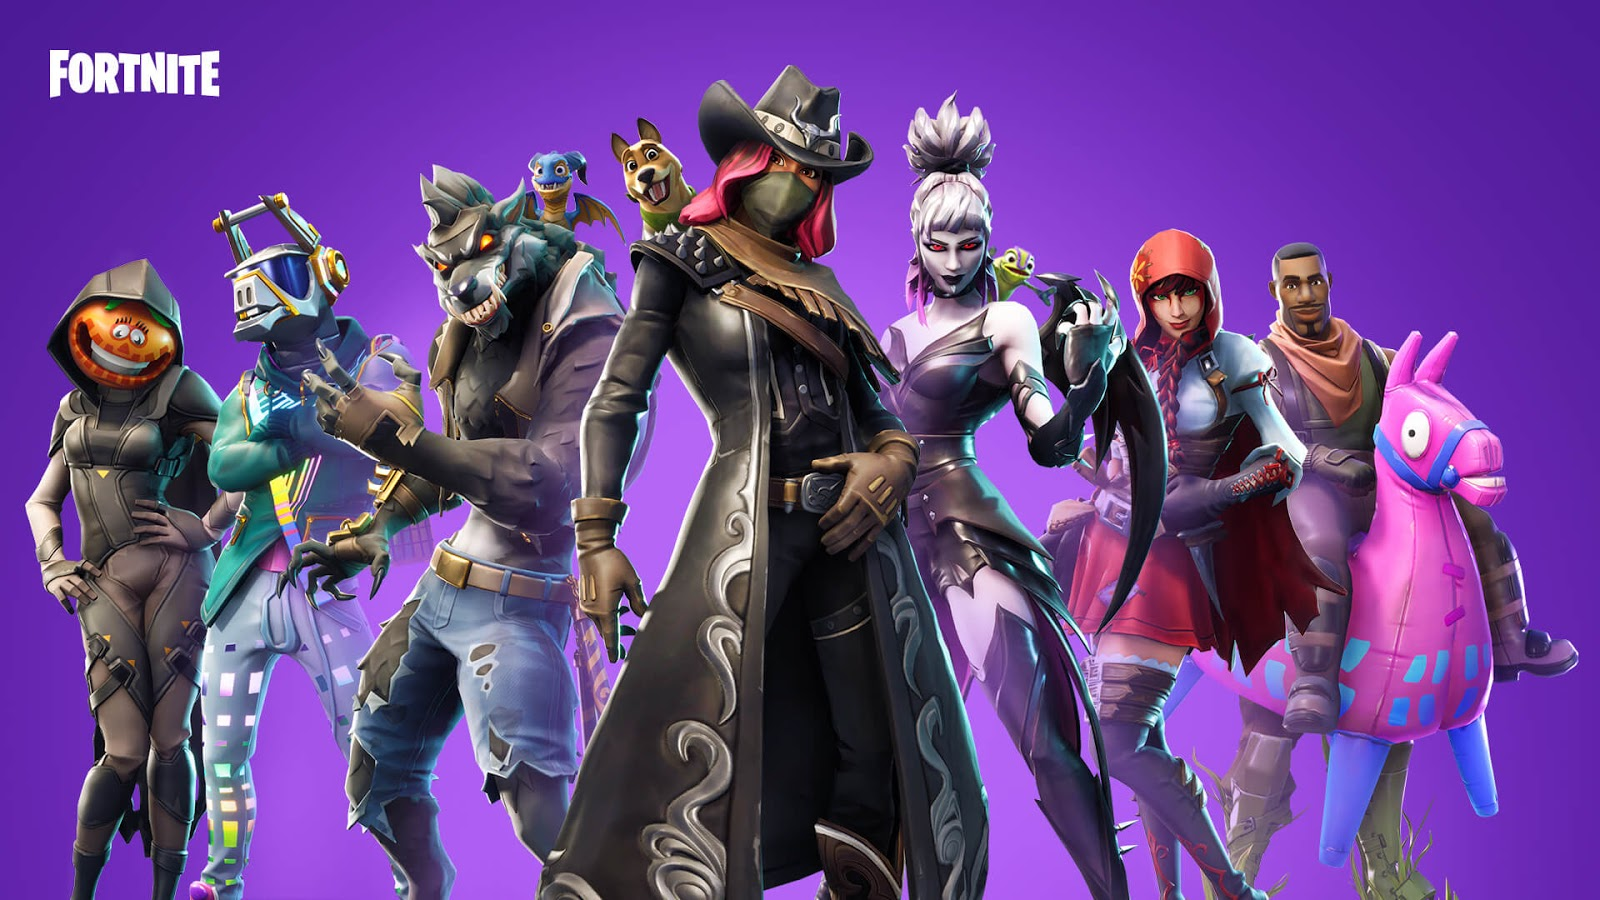 CHRISTMAS GIFT : 300 FORTNITE ACCOUNTS WITH SKINS FOR FREE